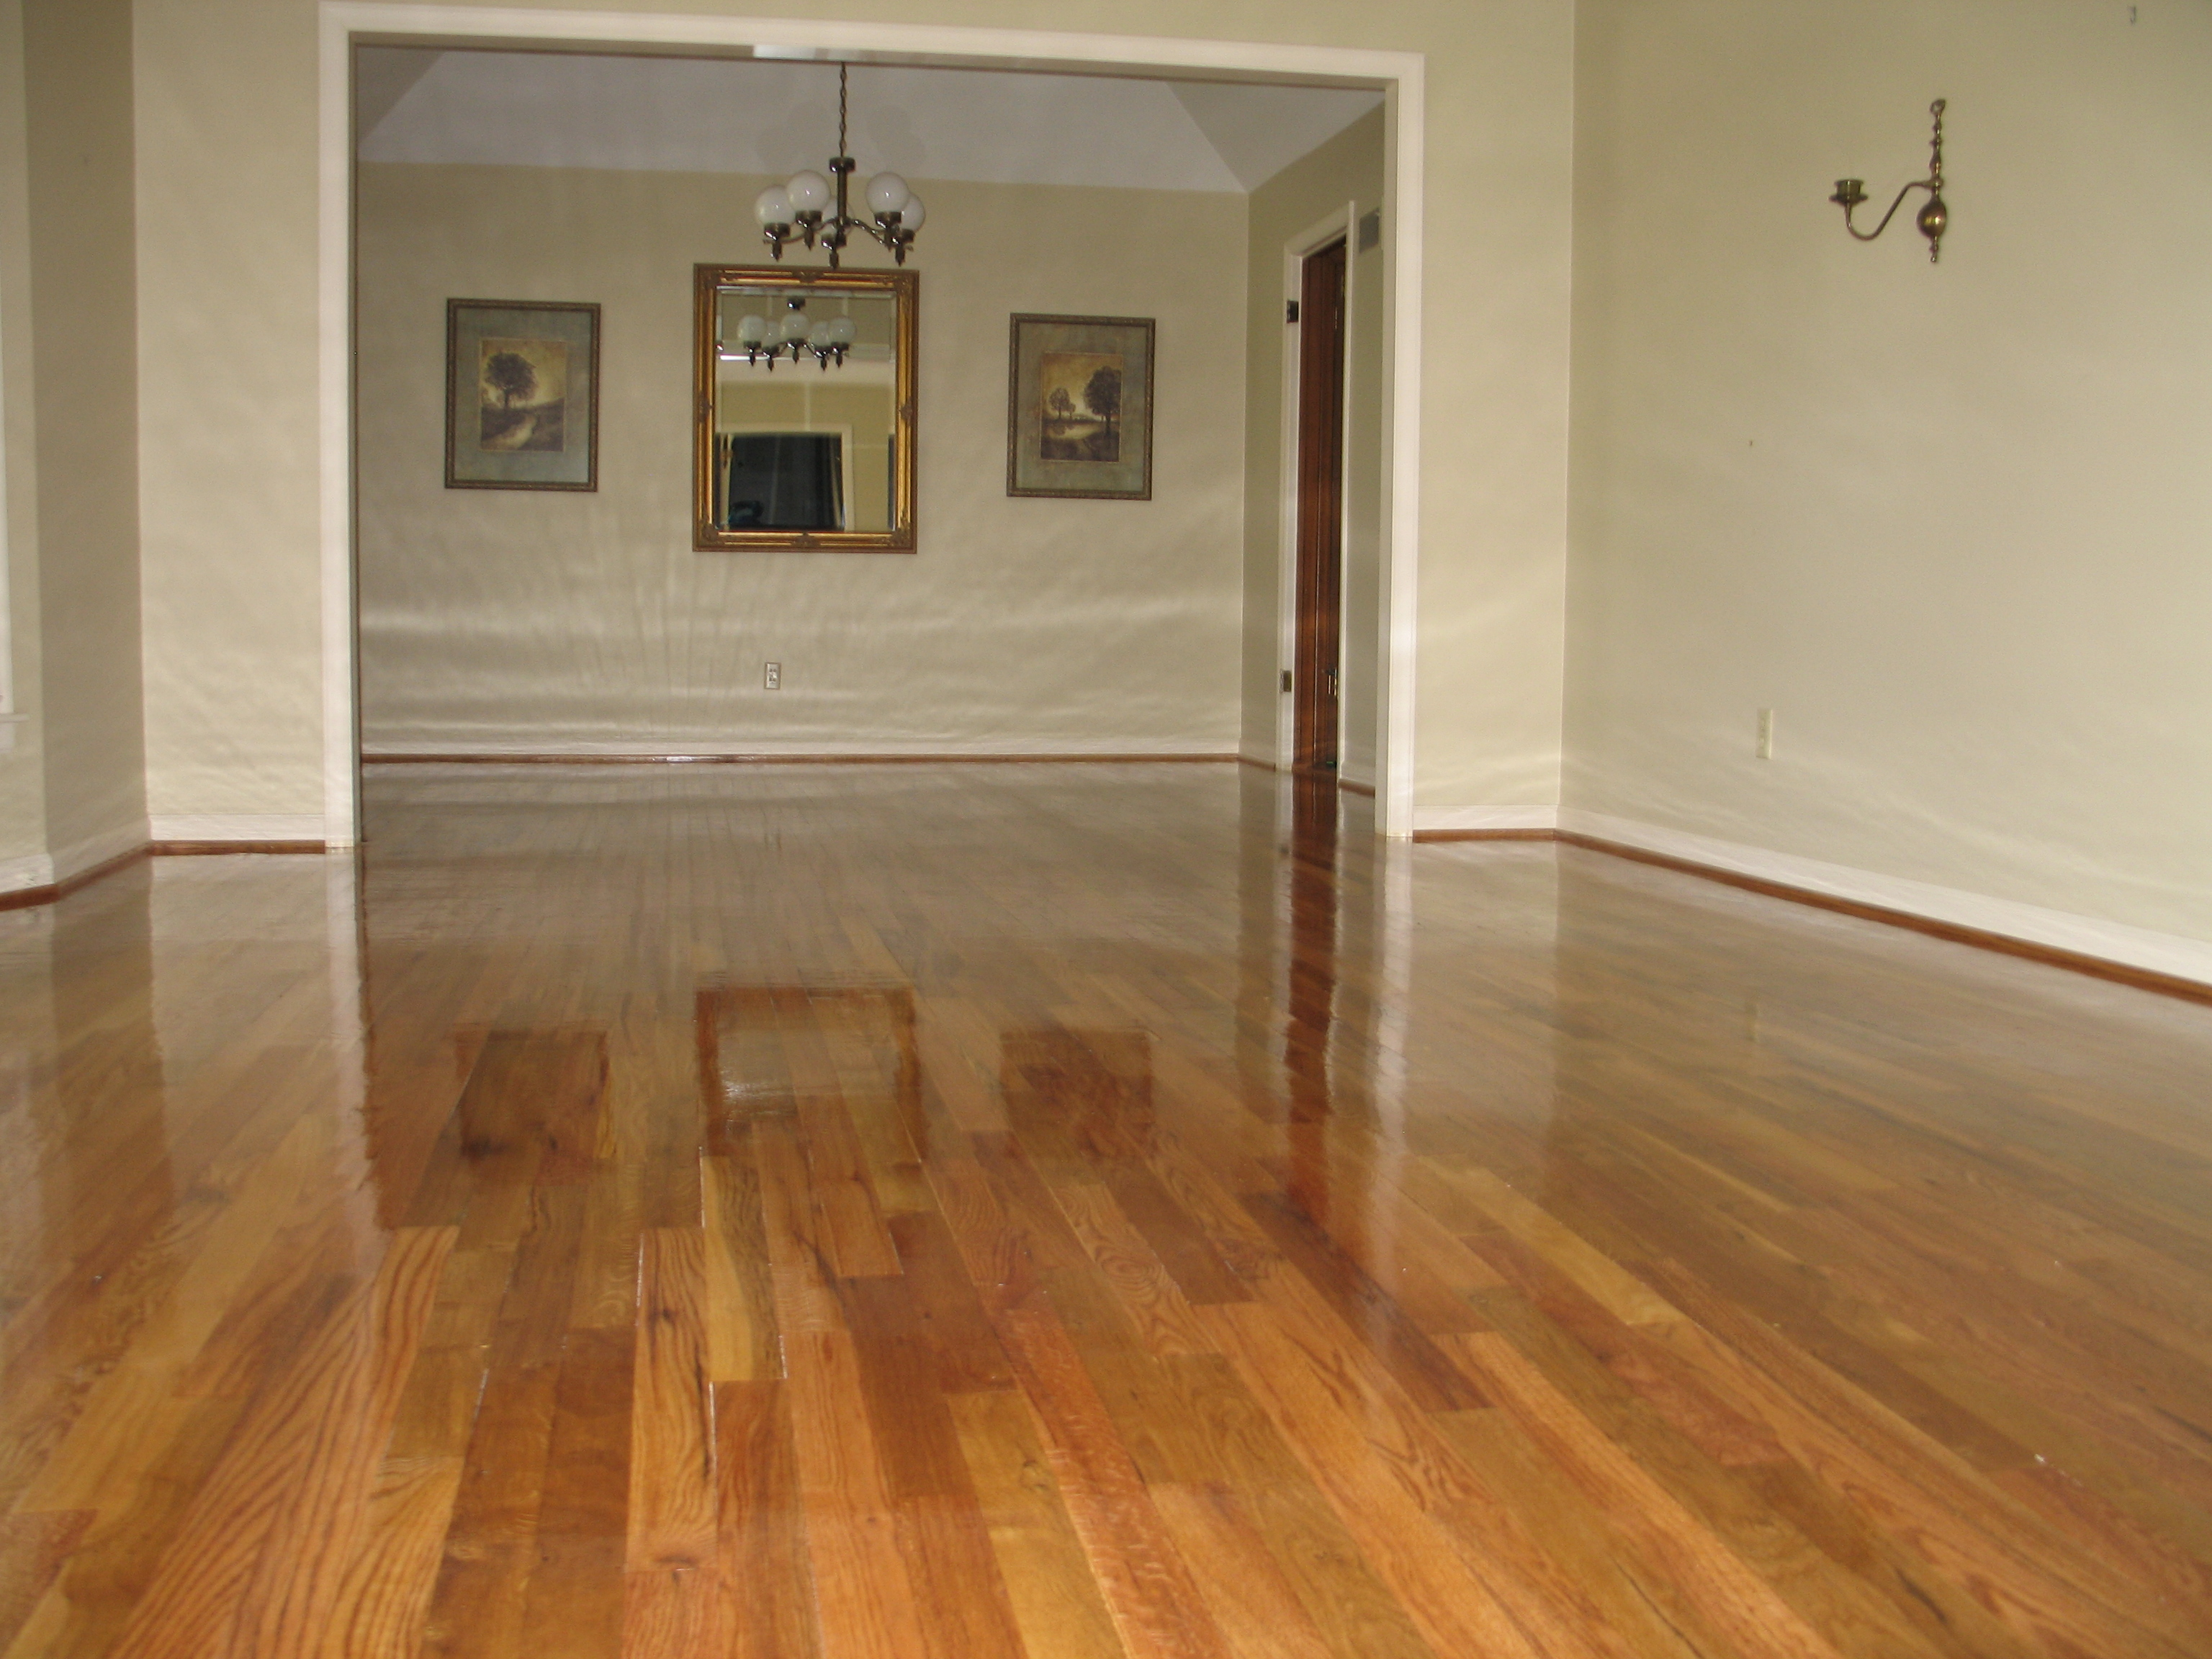 Refinish hardwood floors refinish hardwood floors prices for Sanding hardwood floors